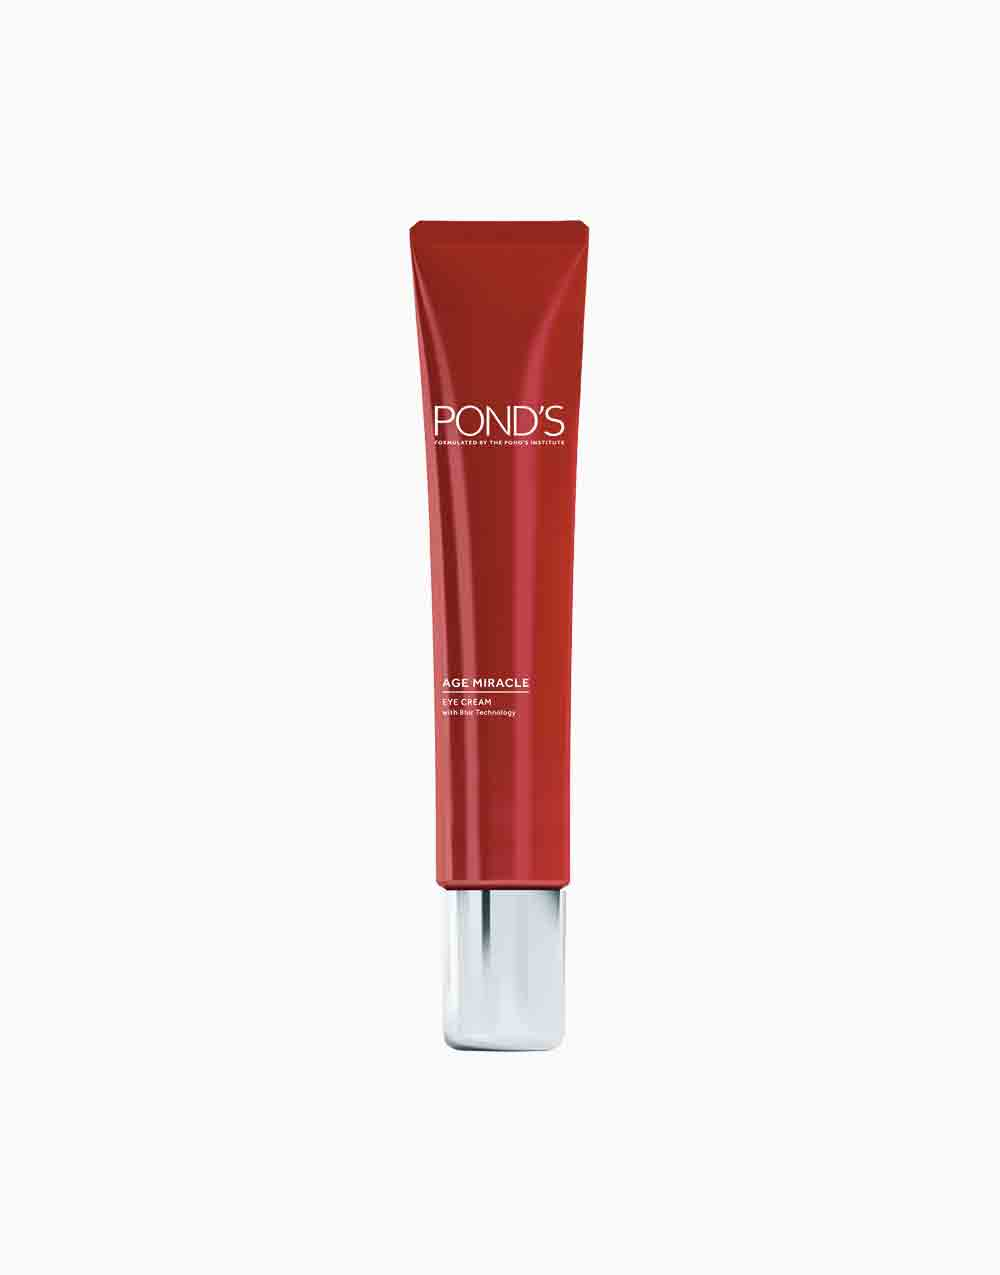 Pond's Age Miracle Eye Cream 15ml by Pond's